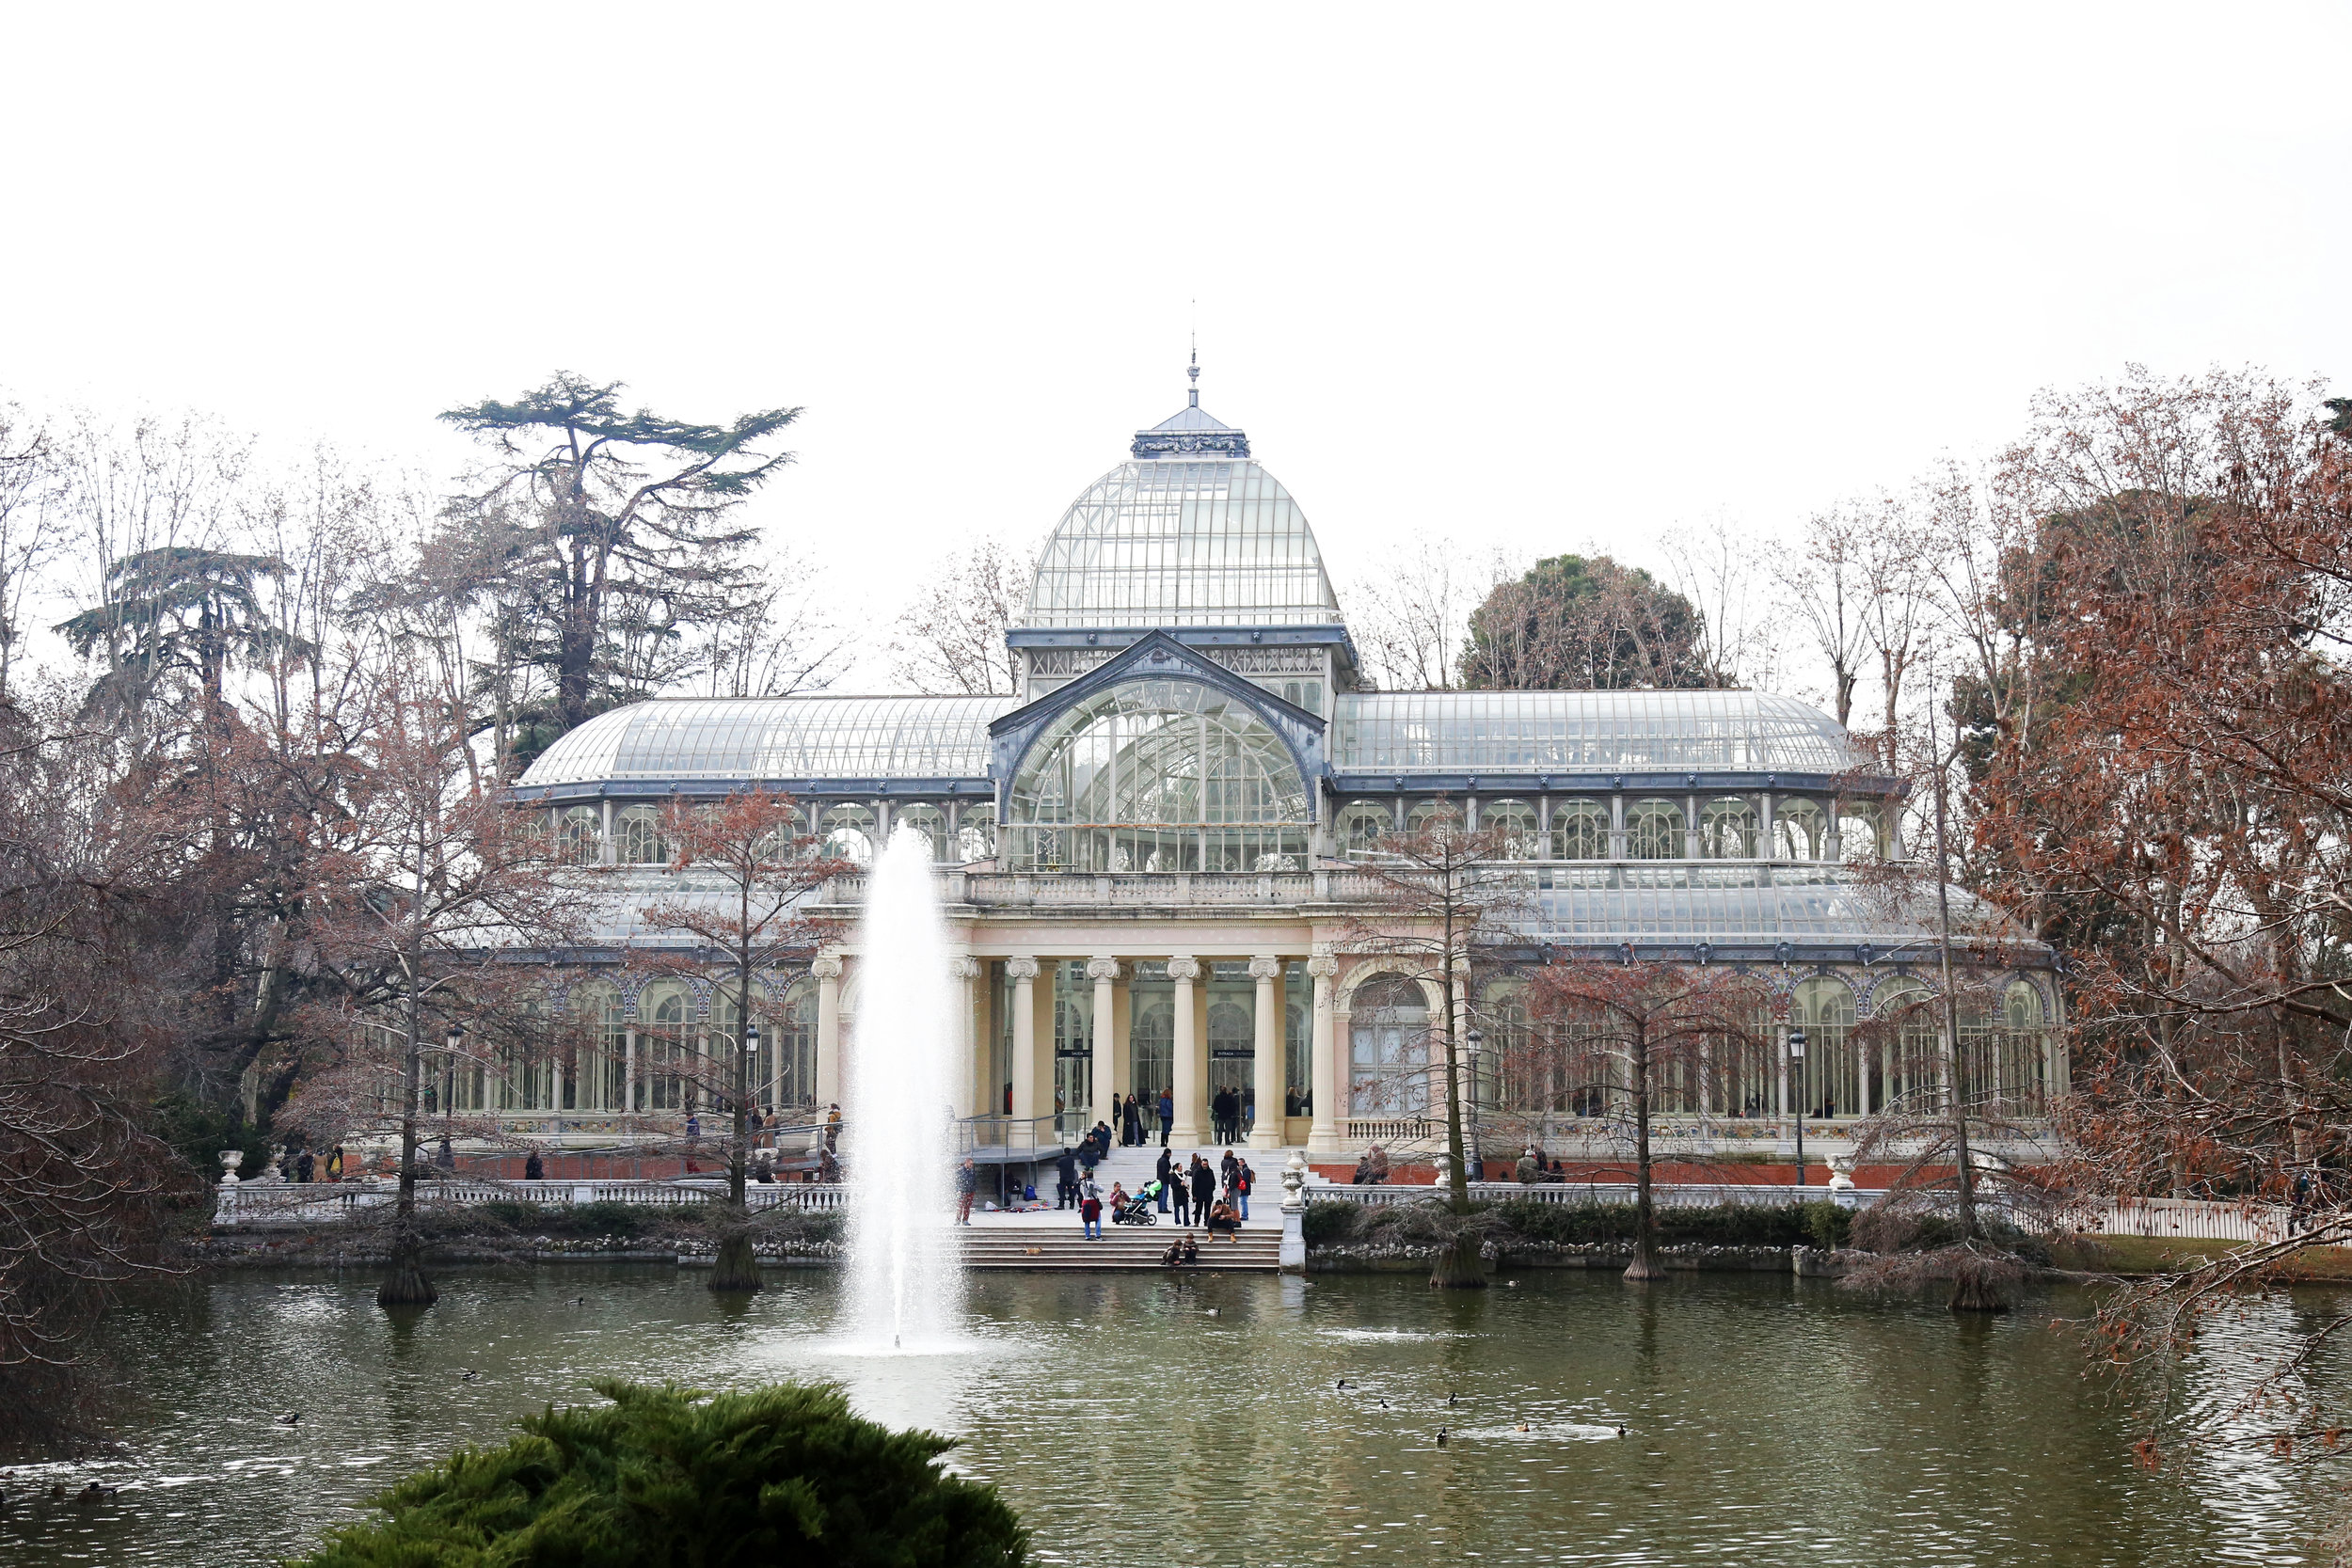 Palacio de Cristal -located located in Buen Retiro Park. It was built in 1887 to house exotic flora and fauna as part of an exhibition on the Philippines.